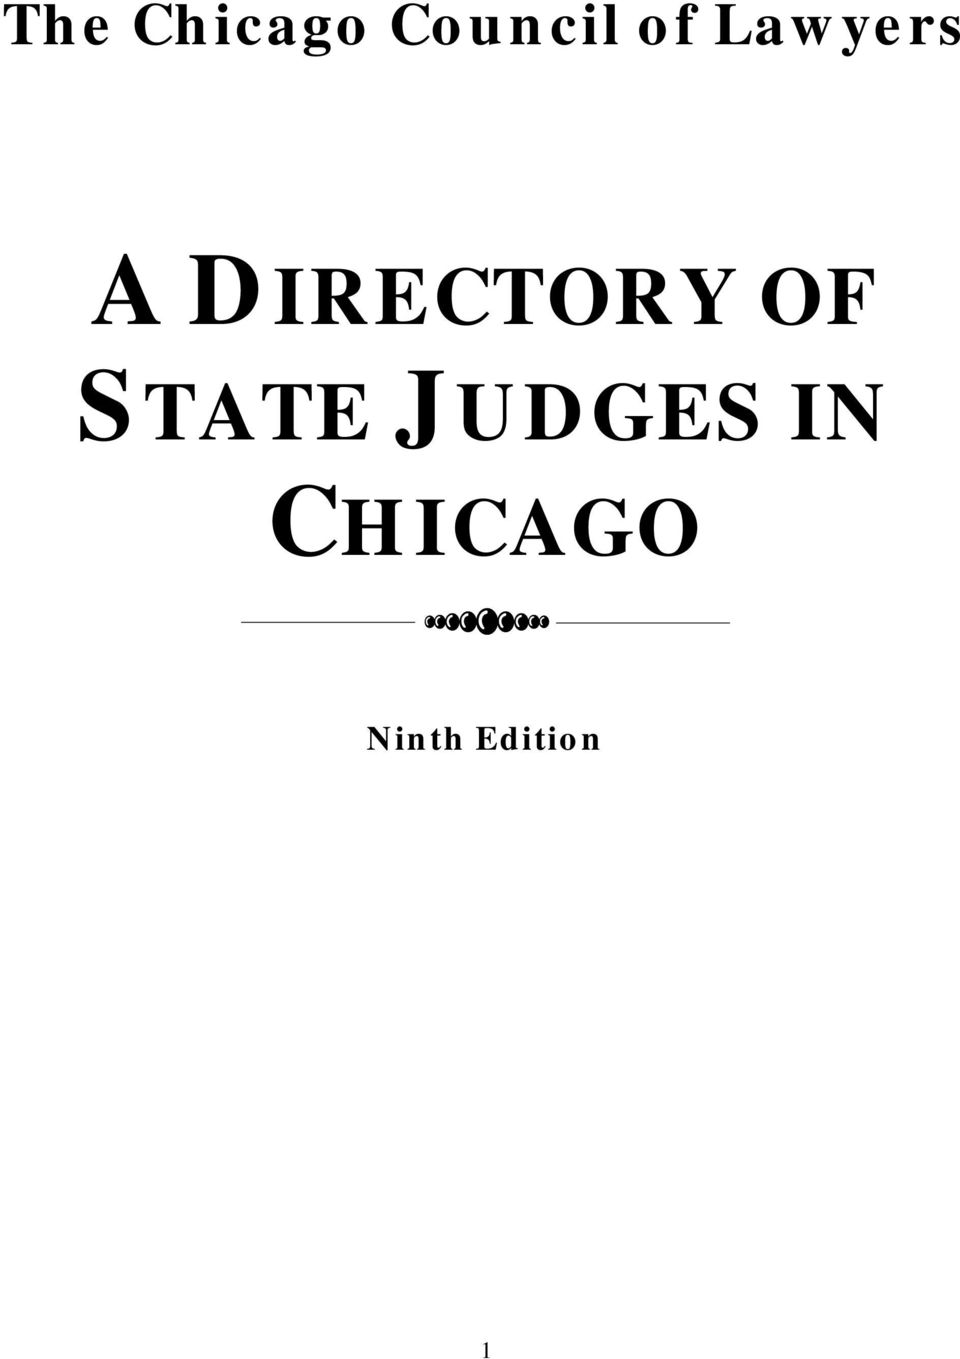 DIRECTORY OF STATE